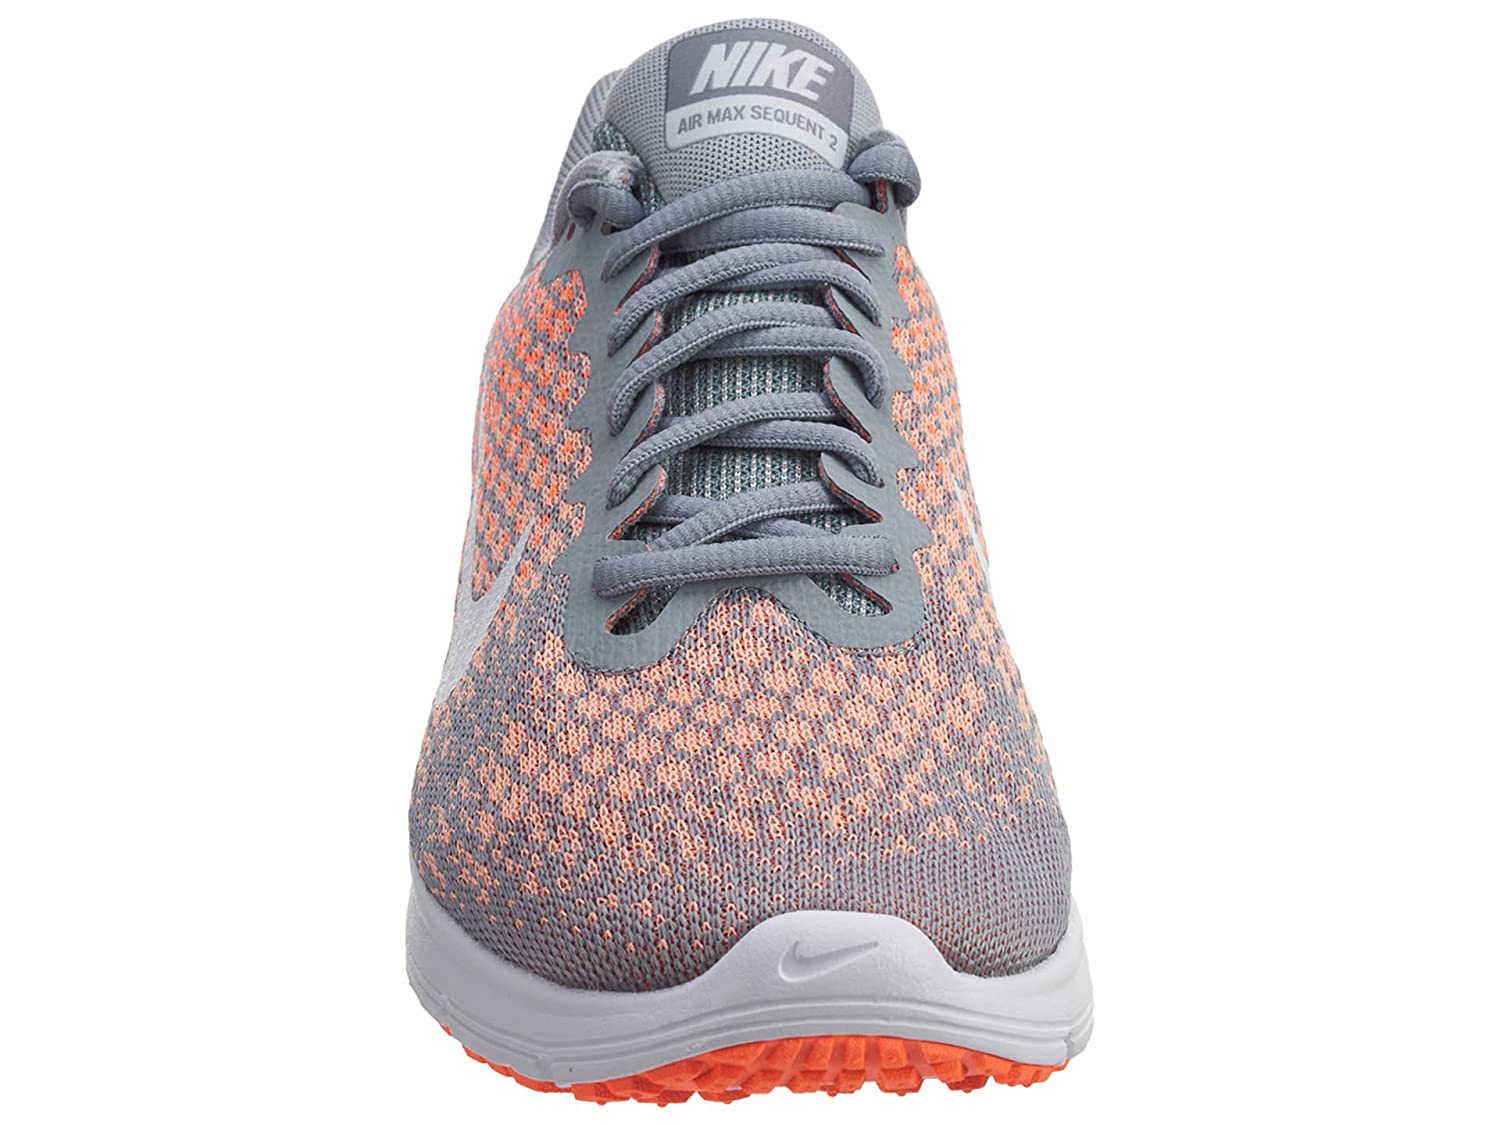 3dbc0a9c86f61 Nike Air Max Sequent 2 Womens Style: 852465-005 Size: 6.5 M US